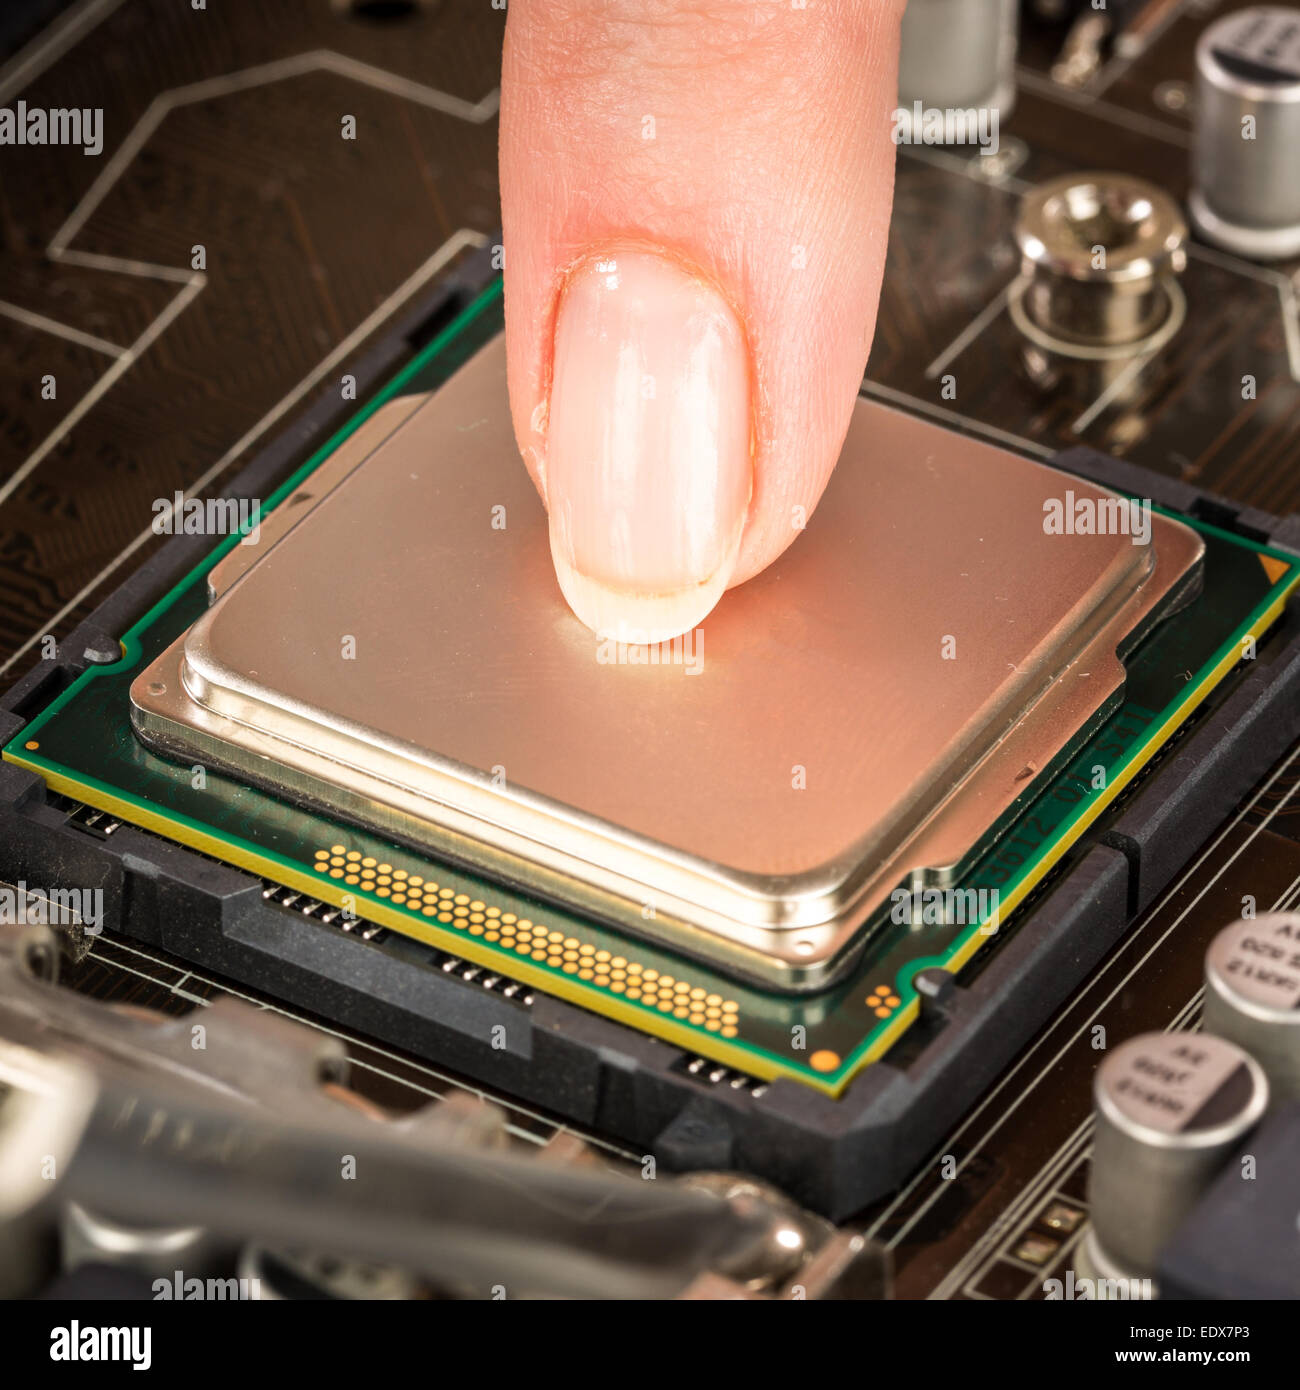 Modern processor and motherboard for a home computer - Stock Image